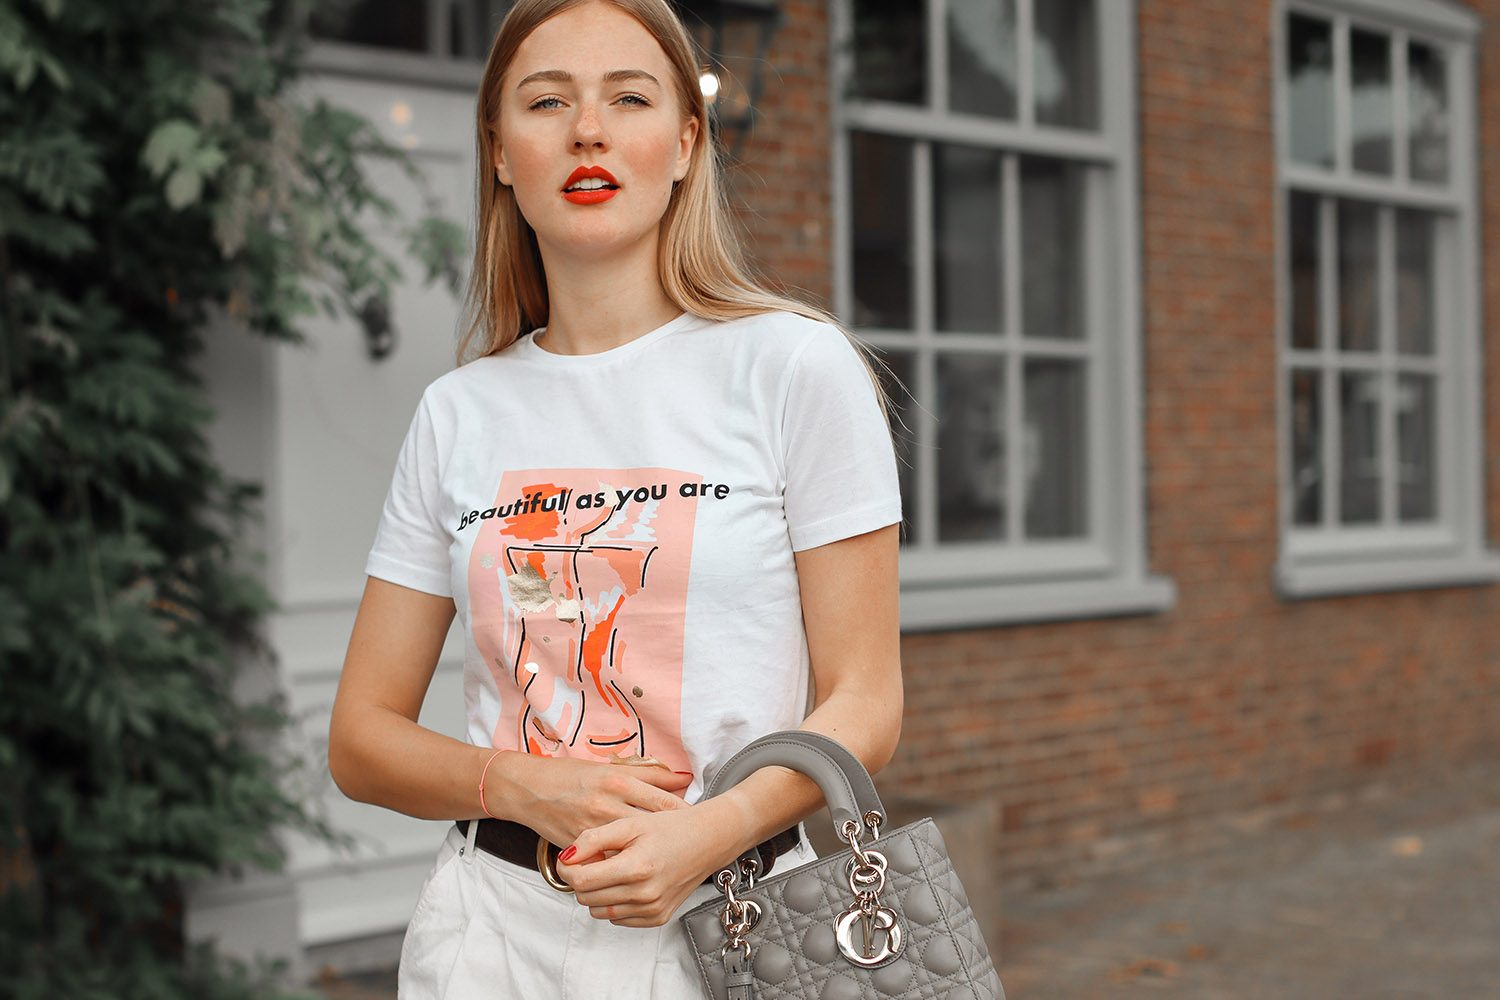 floortjeloves, beautiful as you are, dior, lady dior, dior bag, christian dior, chloe, Chloe Rylee, Chloe boots, Zara, Gucci, icr8, slogan shirt, slogan t'shirt